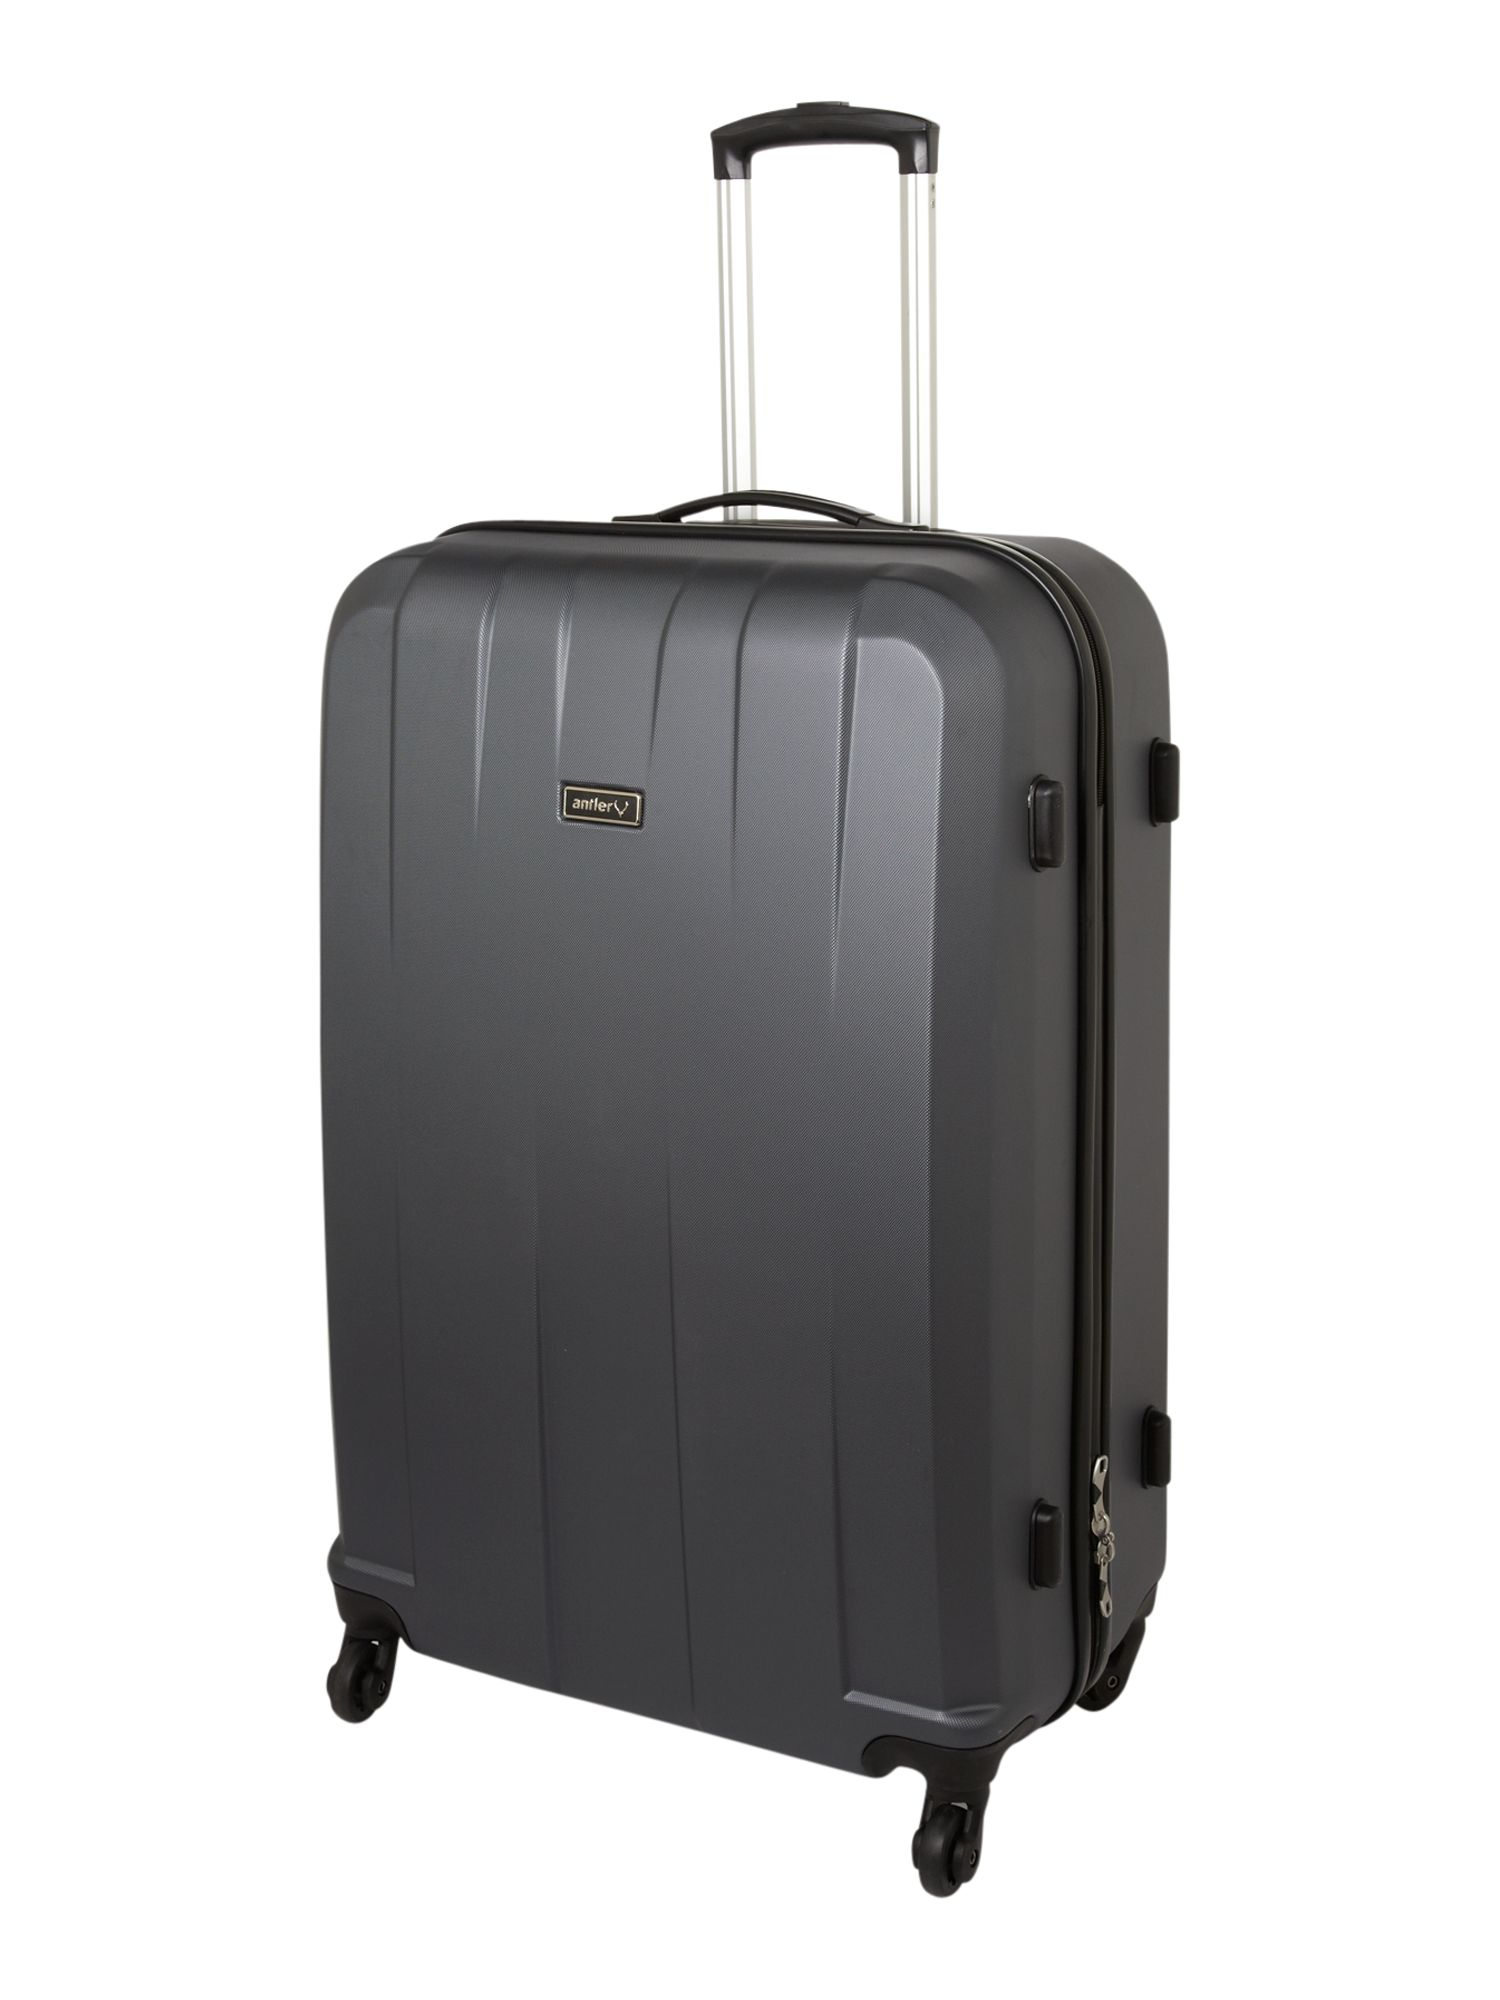 Quadrant grey suitcase range